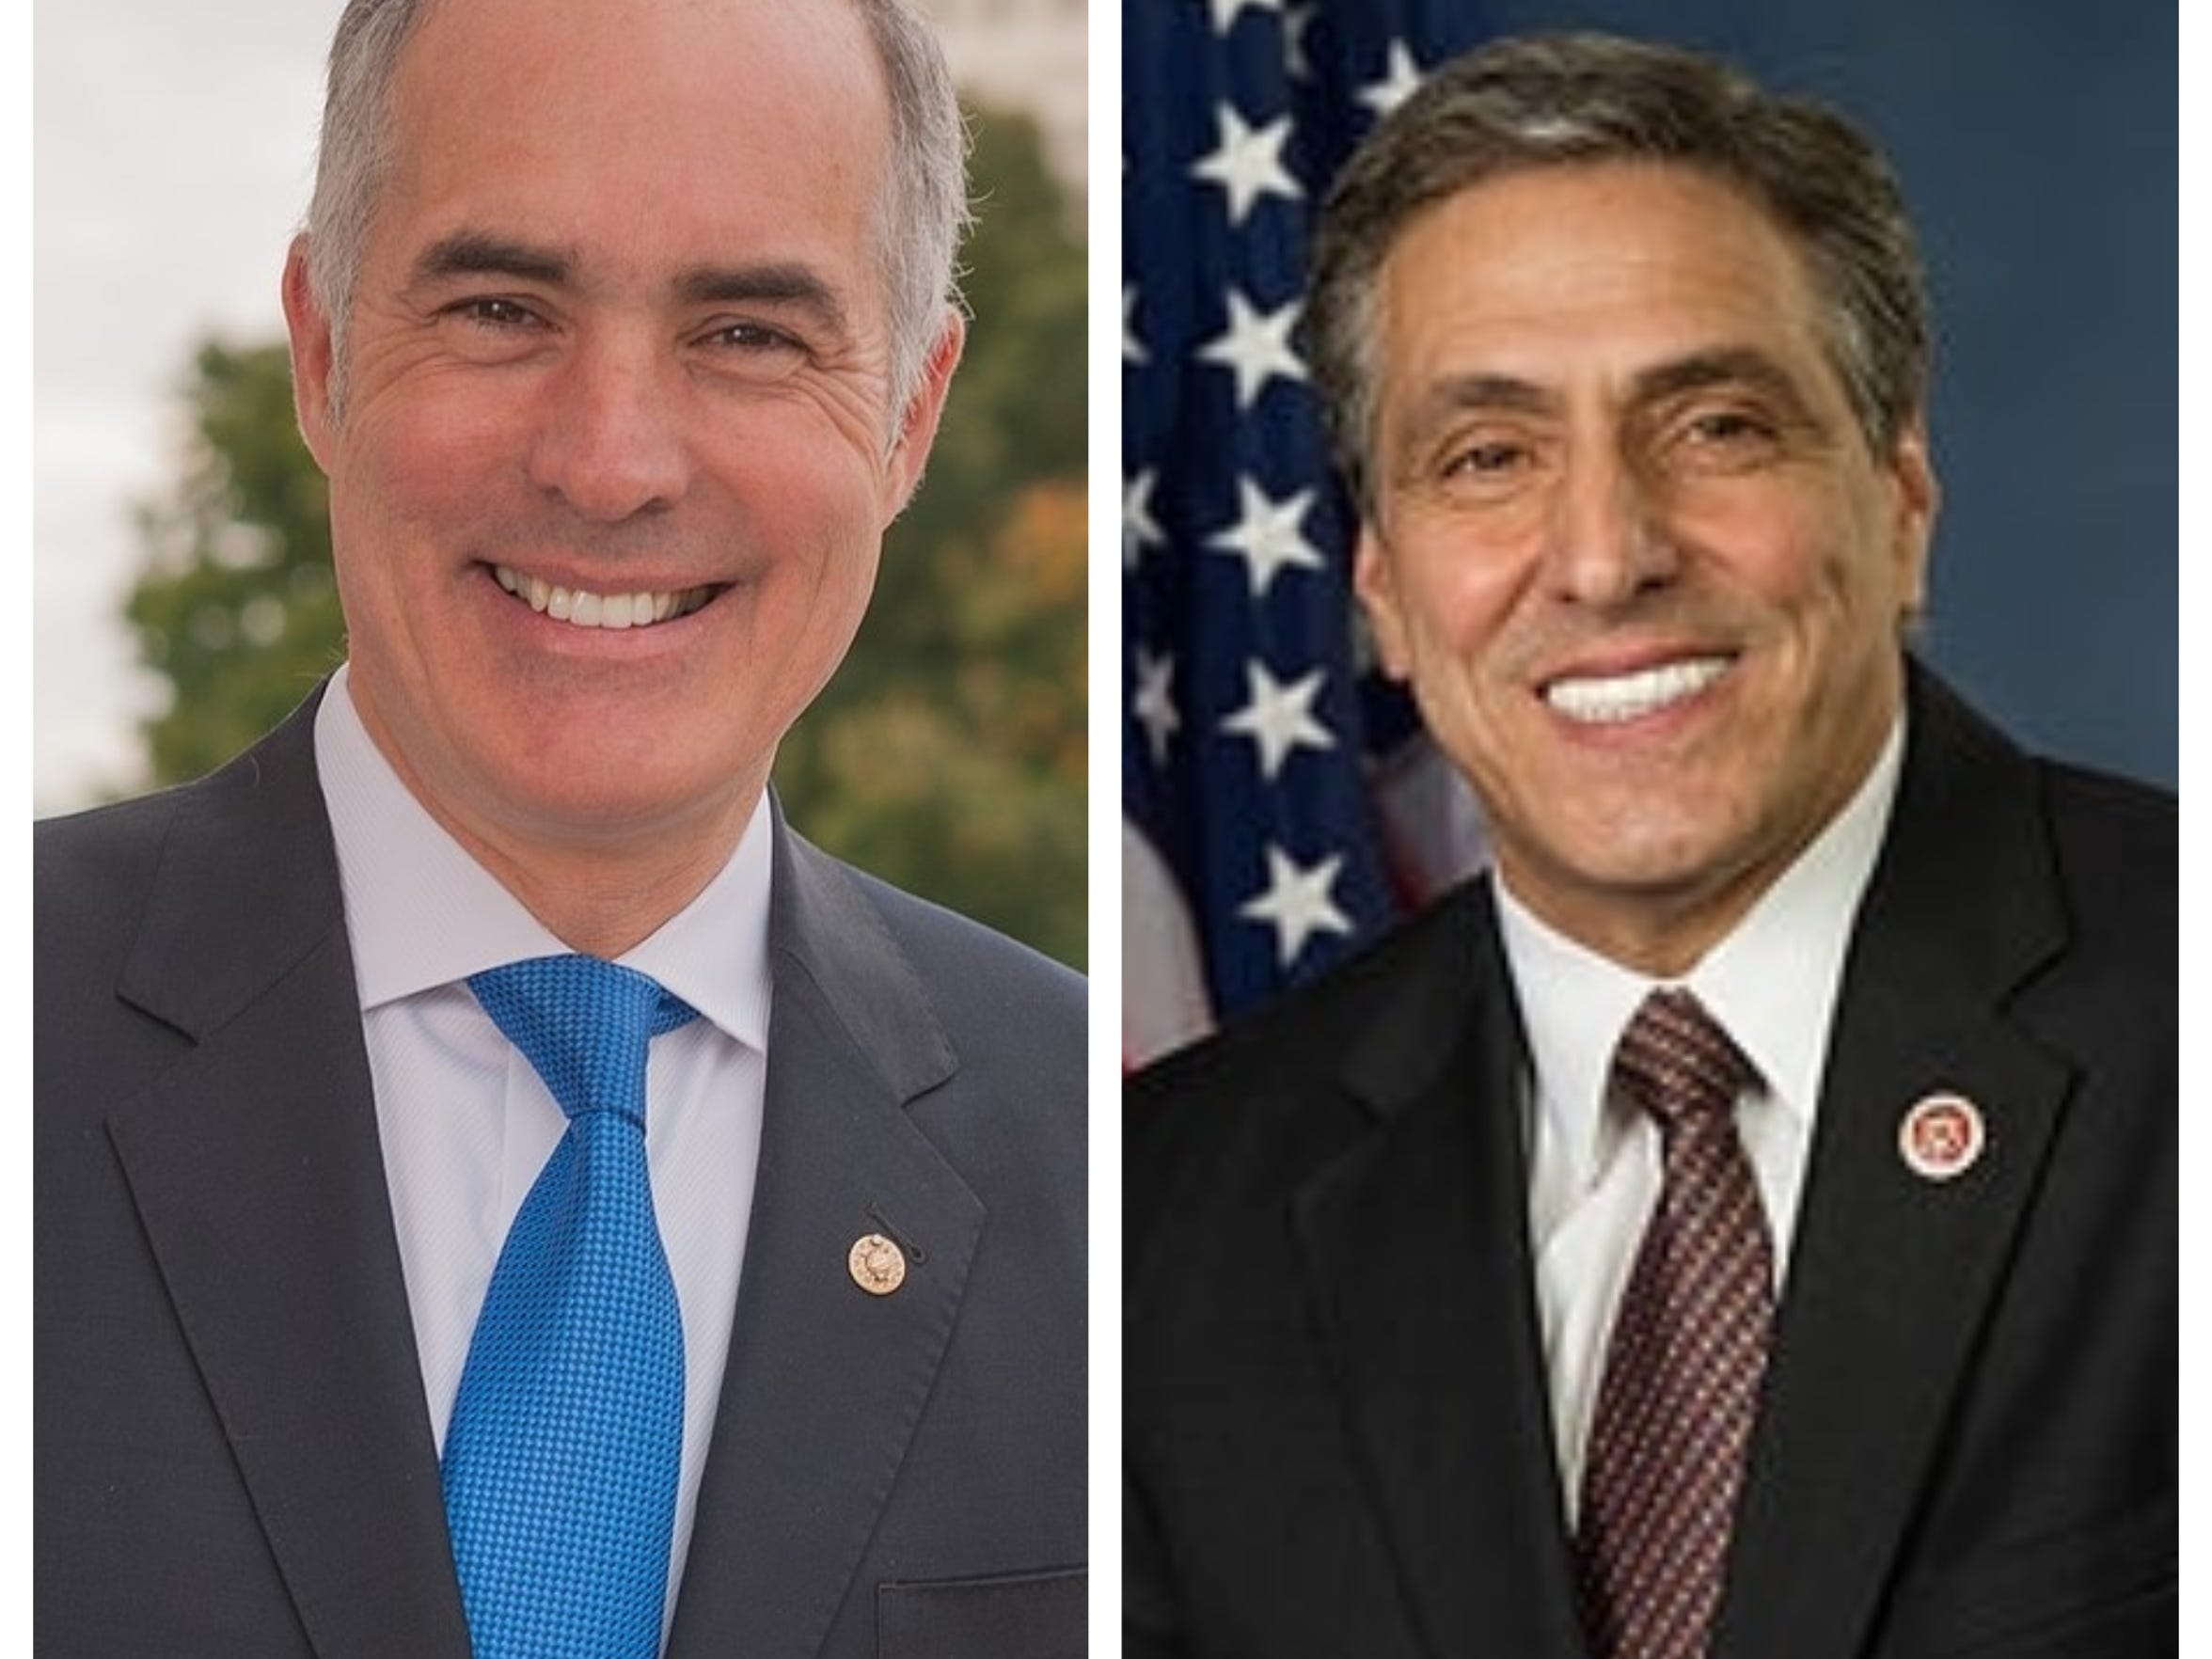 Incumbent Sen. Bob Casey, a Democrat, at left, will face Republican Rep. Lou Barletta in the fall.